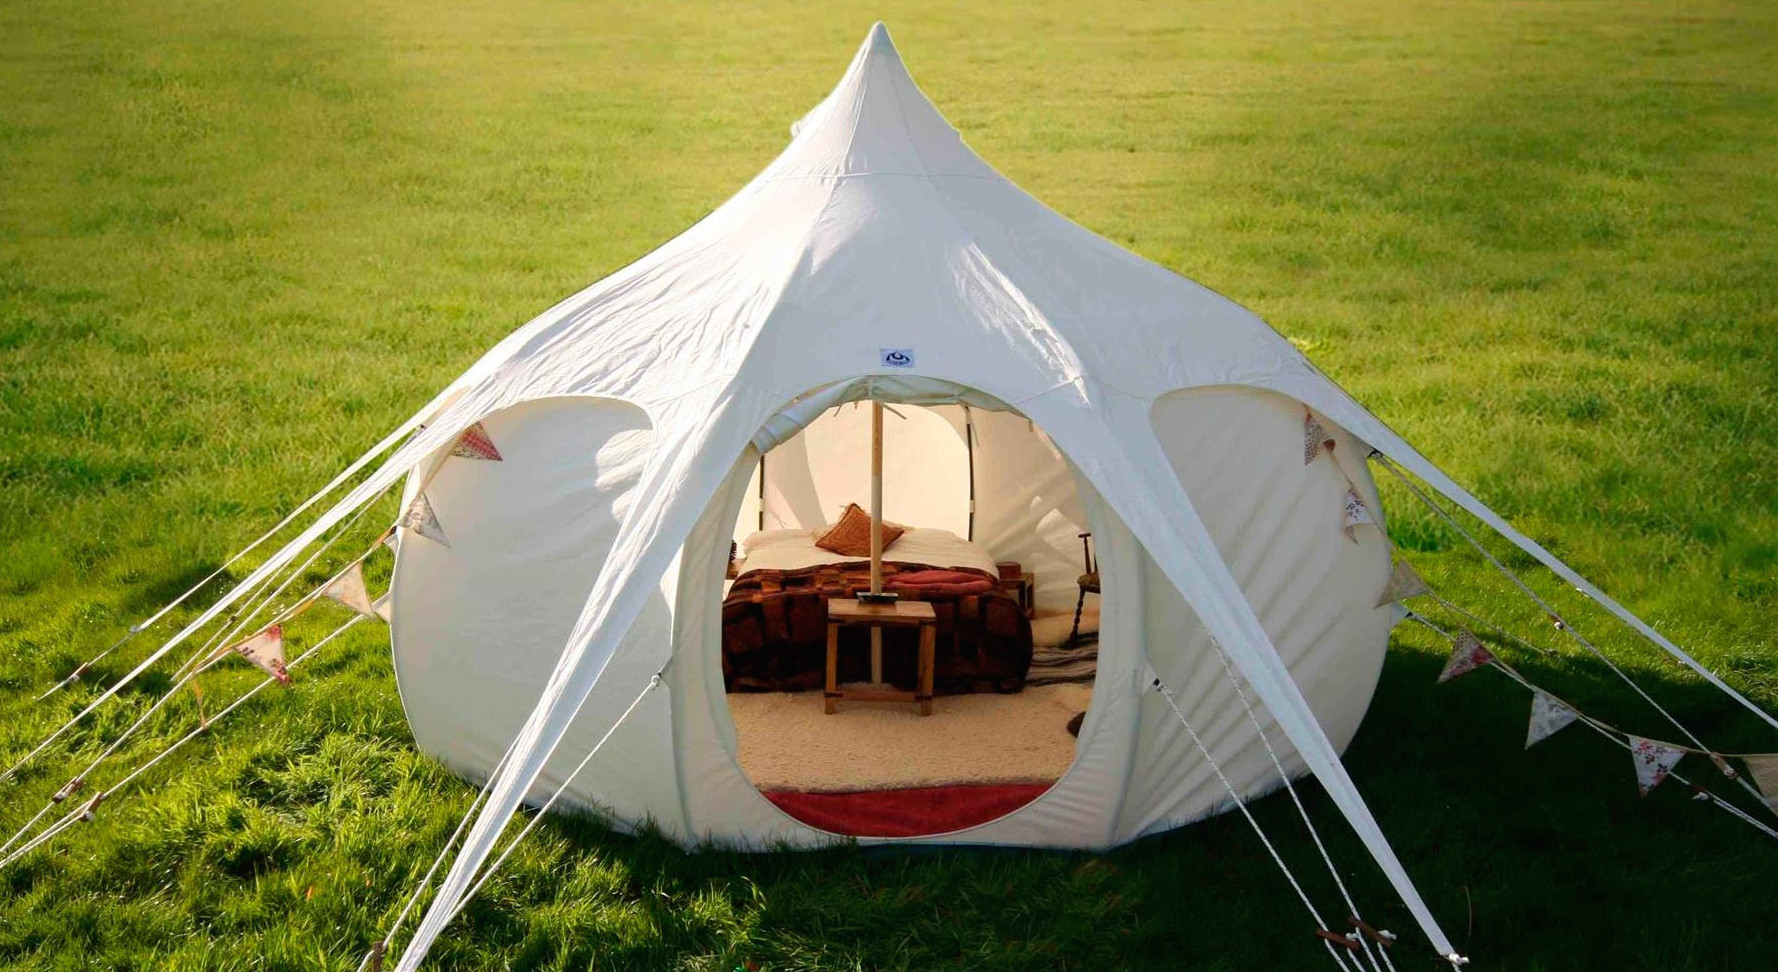 lotus_belle_gl&ing_tents-1.jpg & Our Latest Obsession: Lotus Belle Glamping Tents | SimpleRegistry